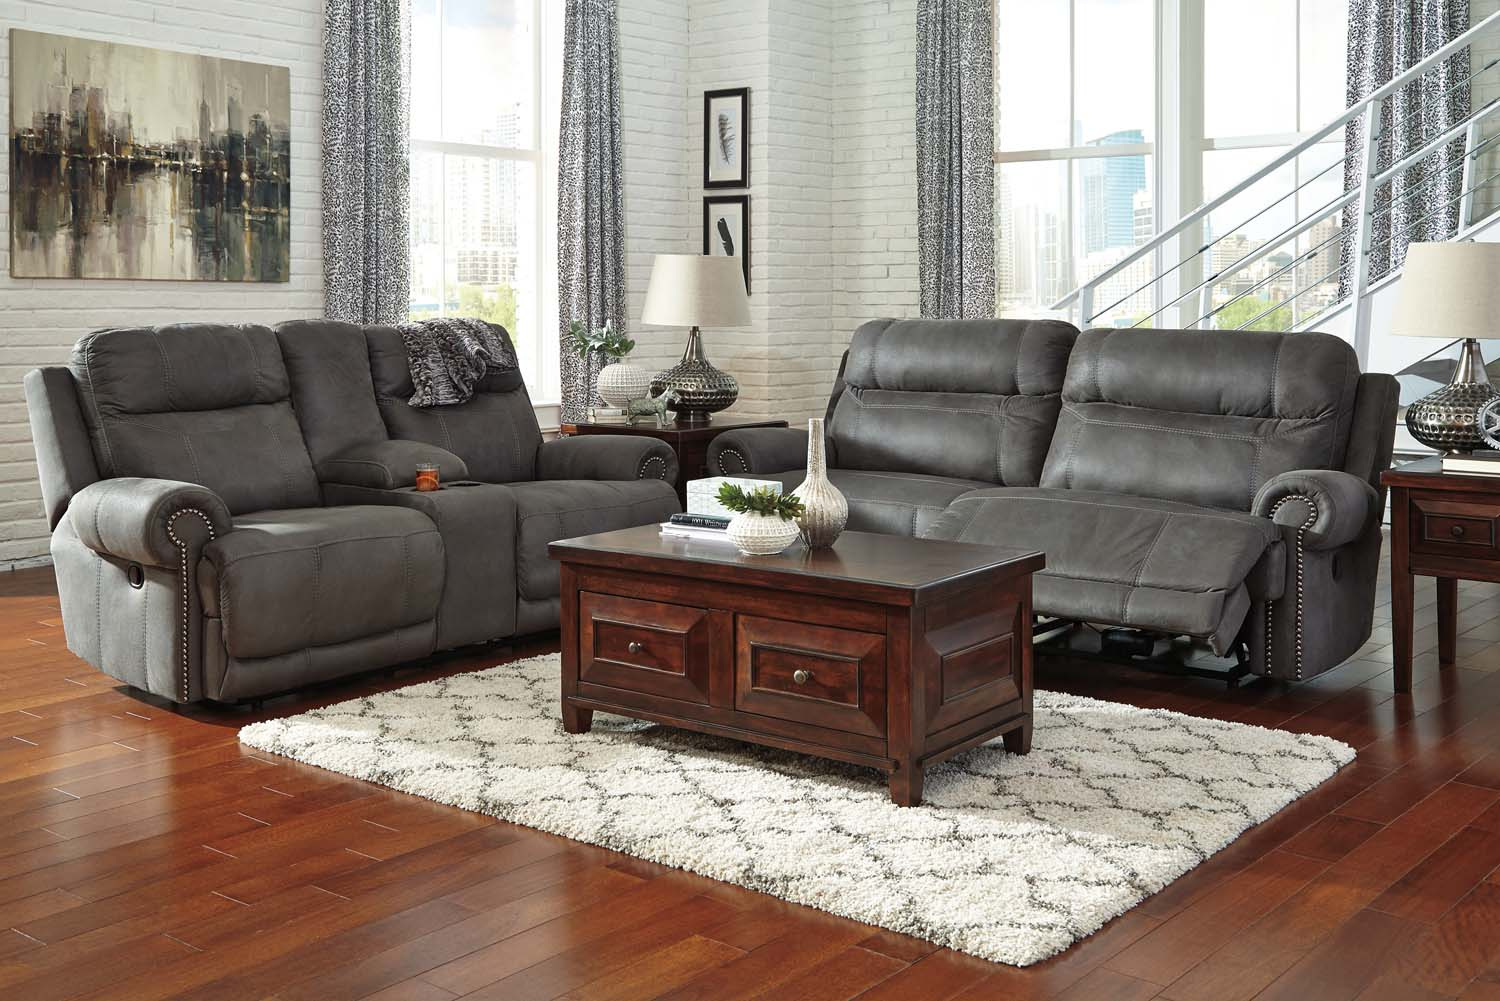 Hidden · Additional Ashley 38401 Austere   Gray Living Room Set Houston  Texas USA Aztec Furniture